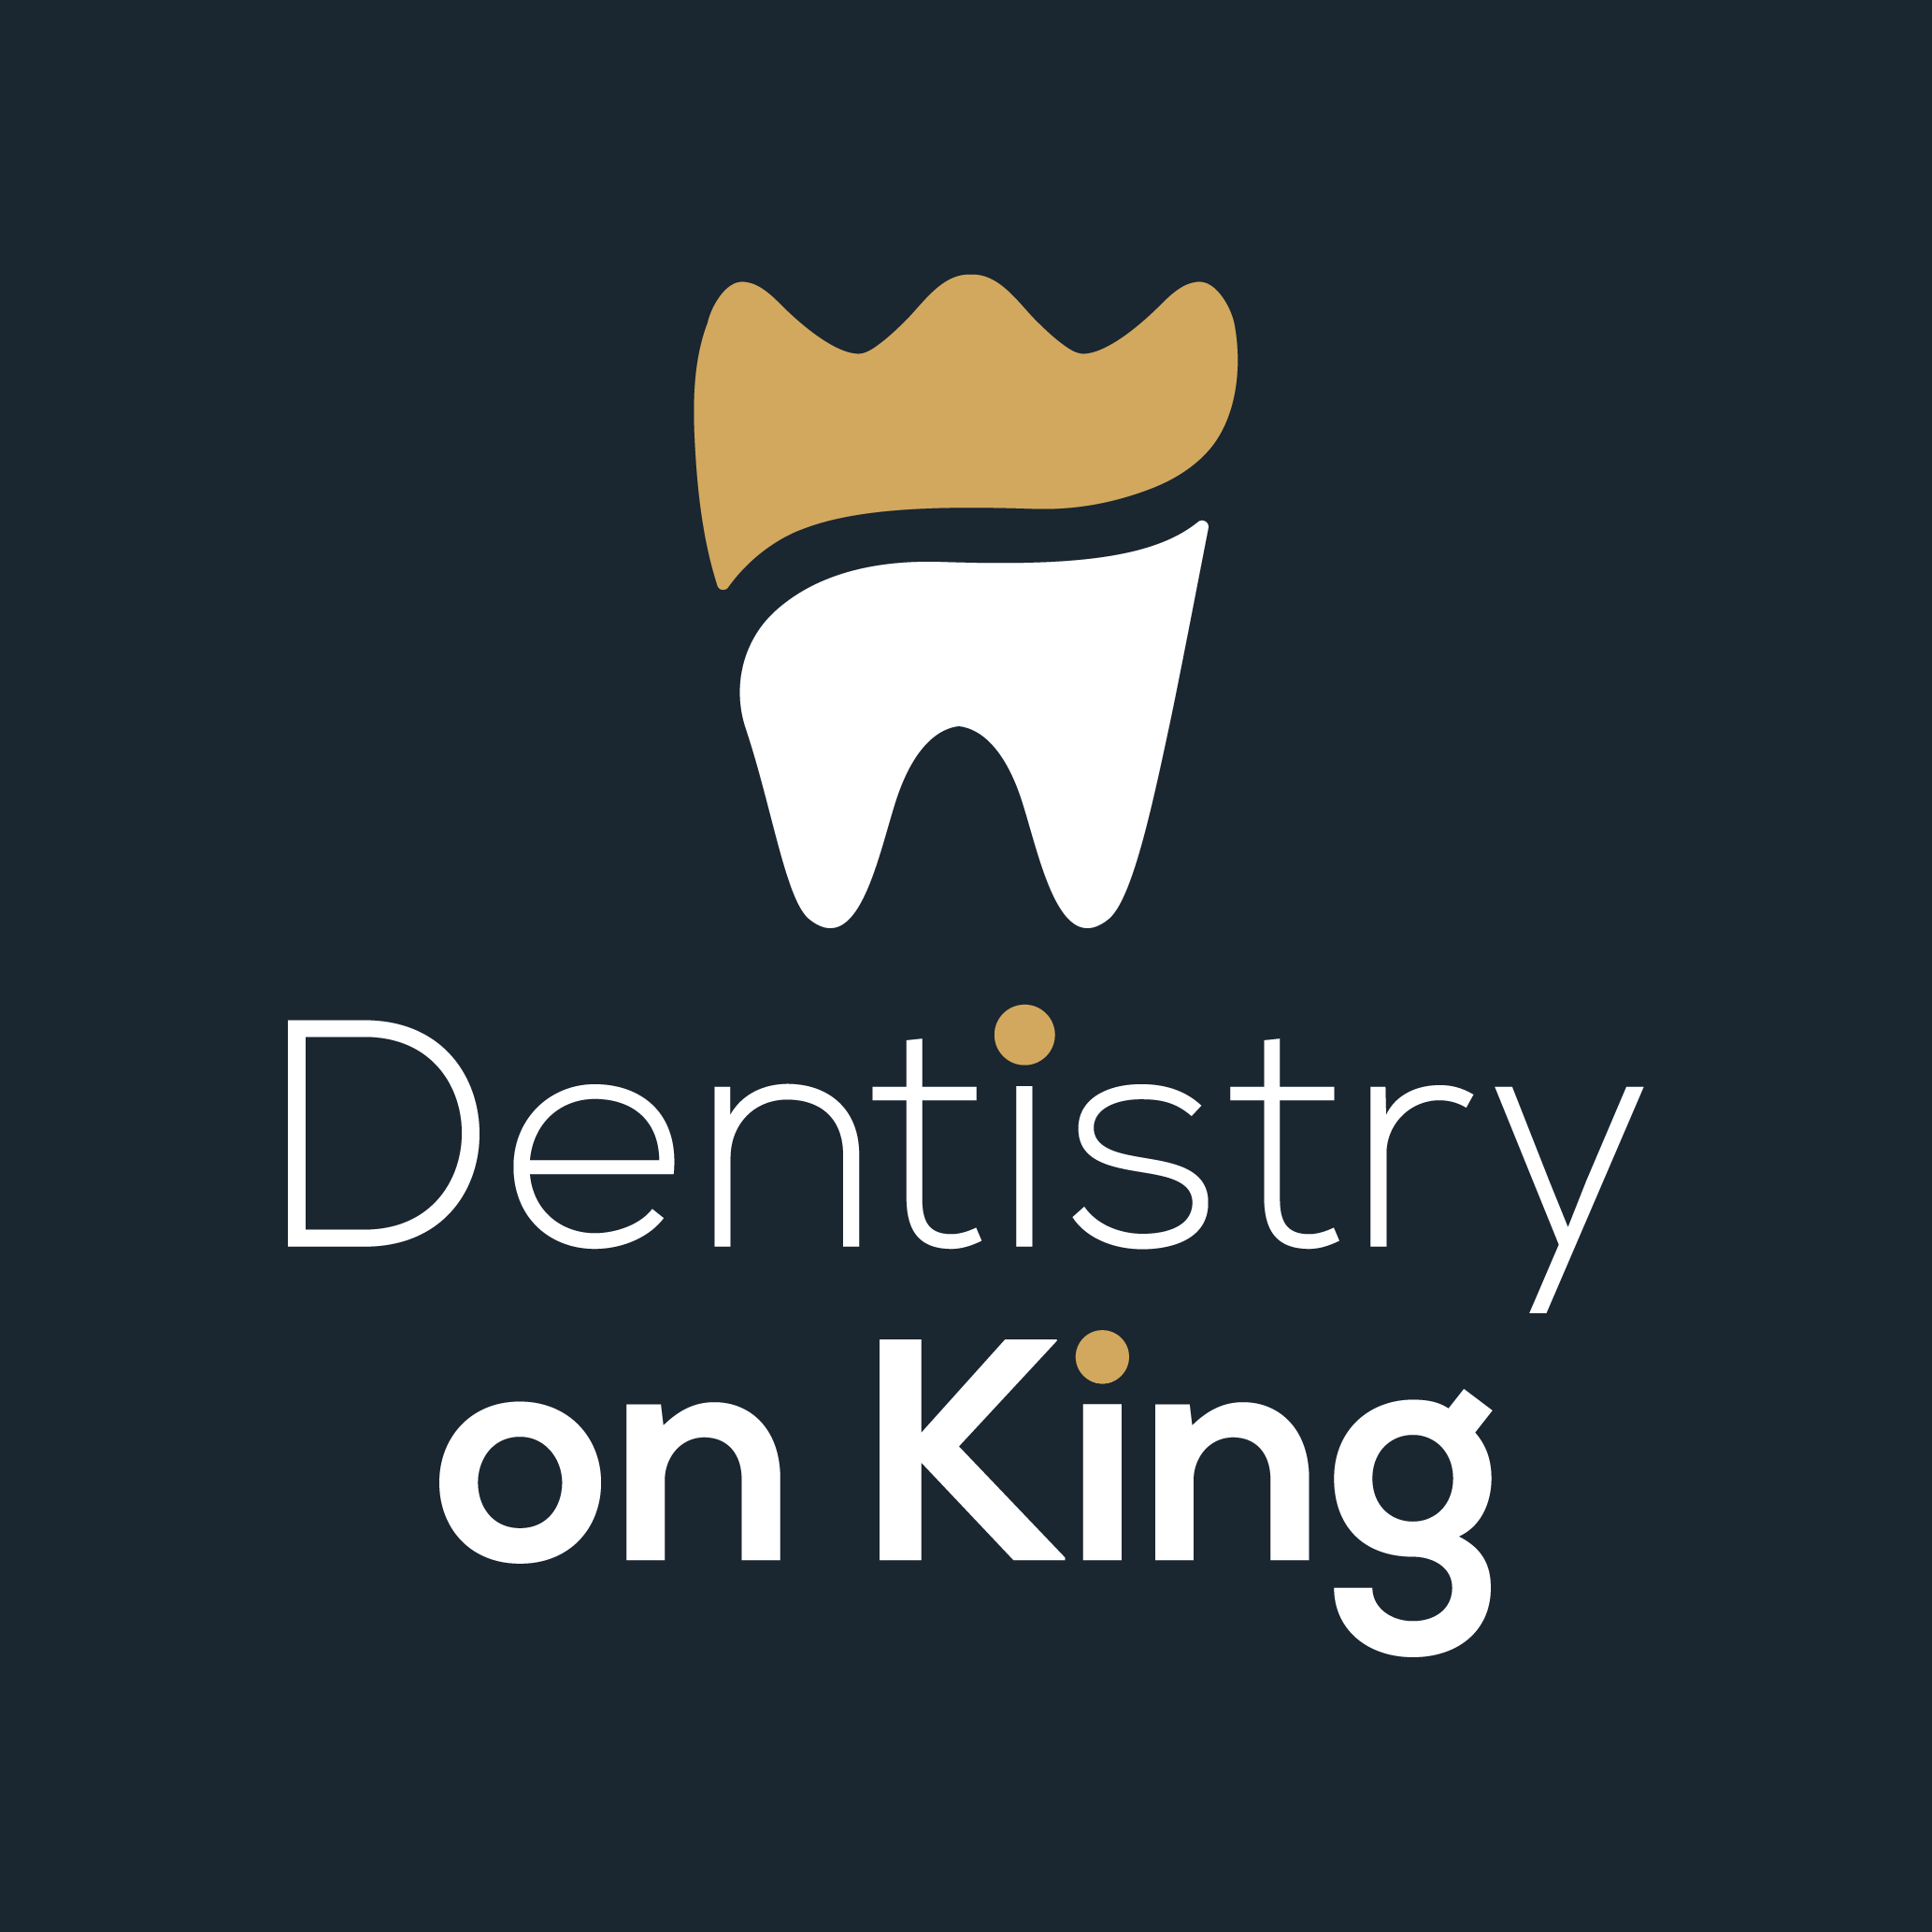 dentistry on king Desktop Logo